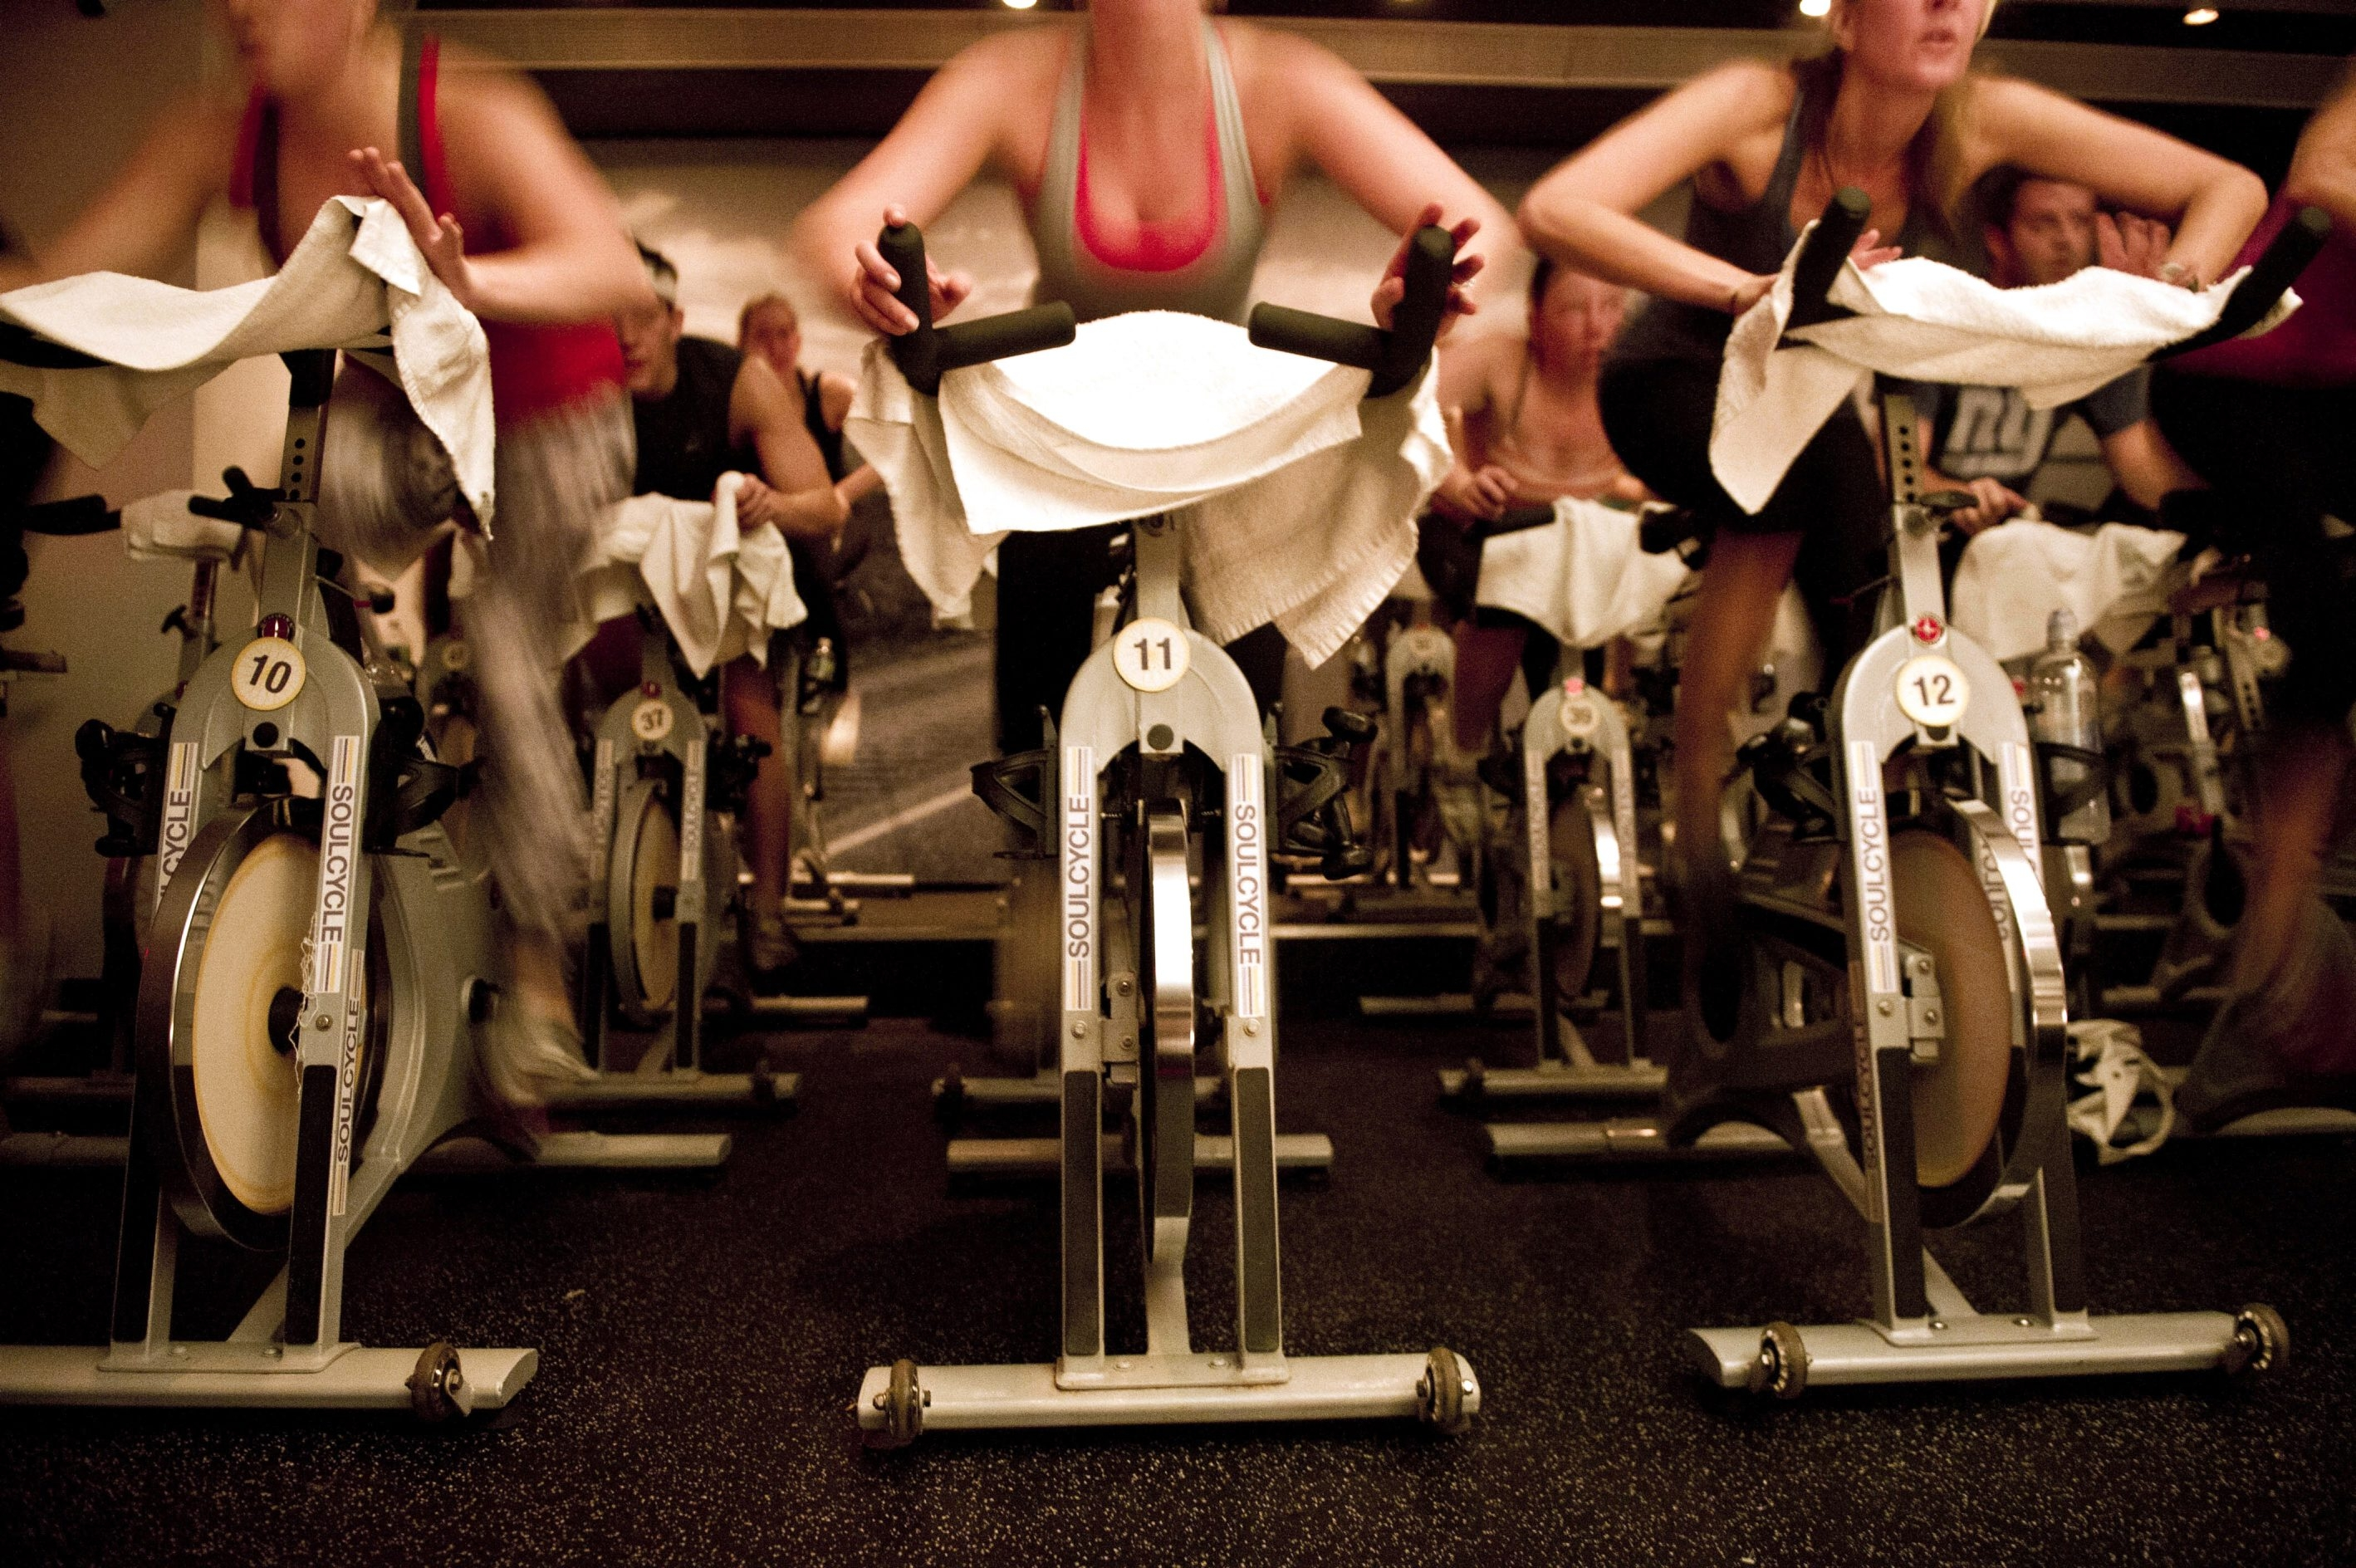 A tip for newcomers: When a grueling spinning class is over, don't leave the gym for 15 minutes. In case you collapse, you'll want someone there to catch you.